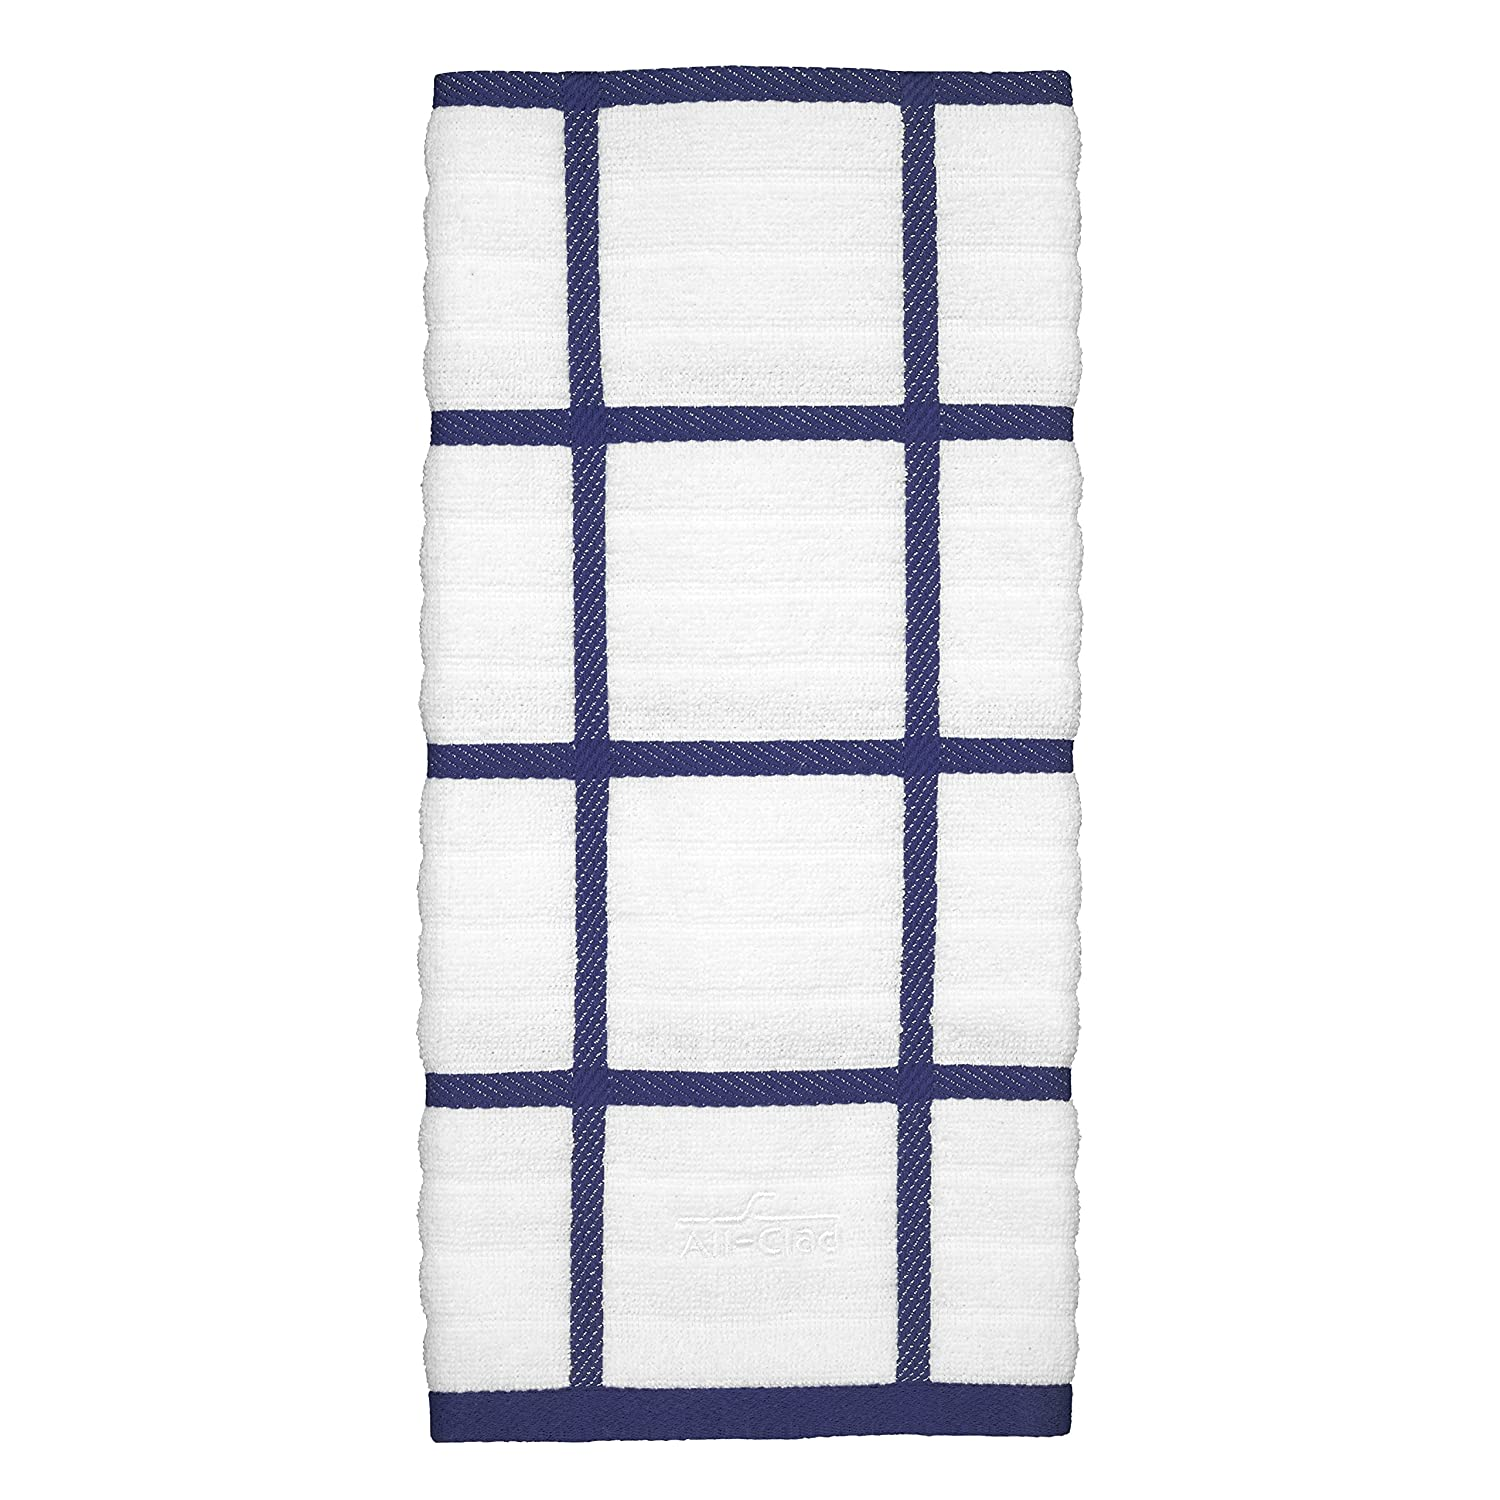 All-Clad Textiles 100-Percent Combed Terry Loop Cotton Kitchen Towel, Oversized, Highly Absorbent and Anti-Microbial, 17-inch by 30-inch, Checked, Colbalt Blue